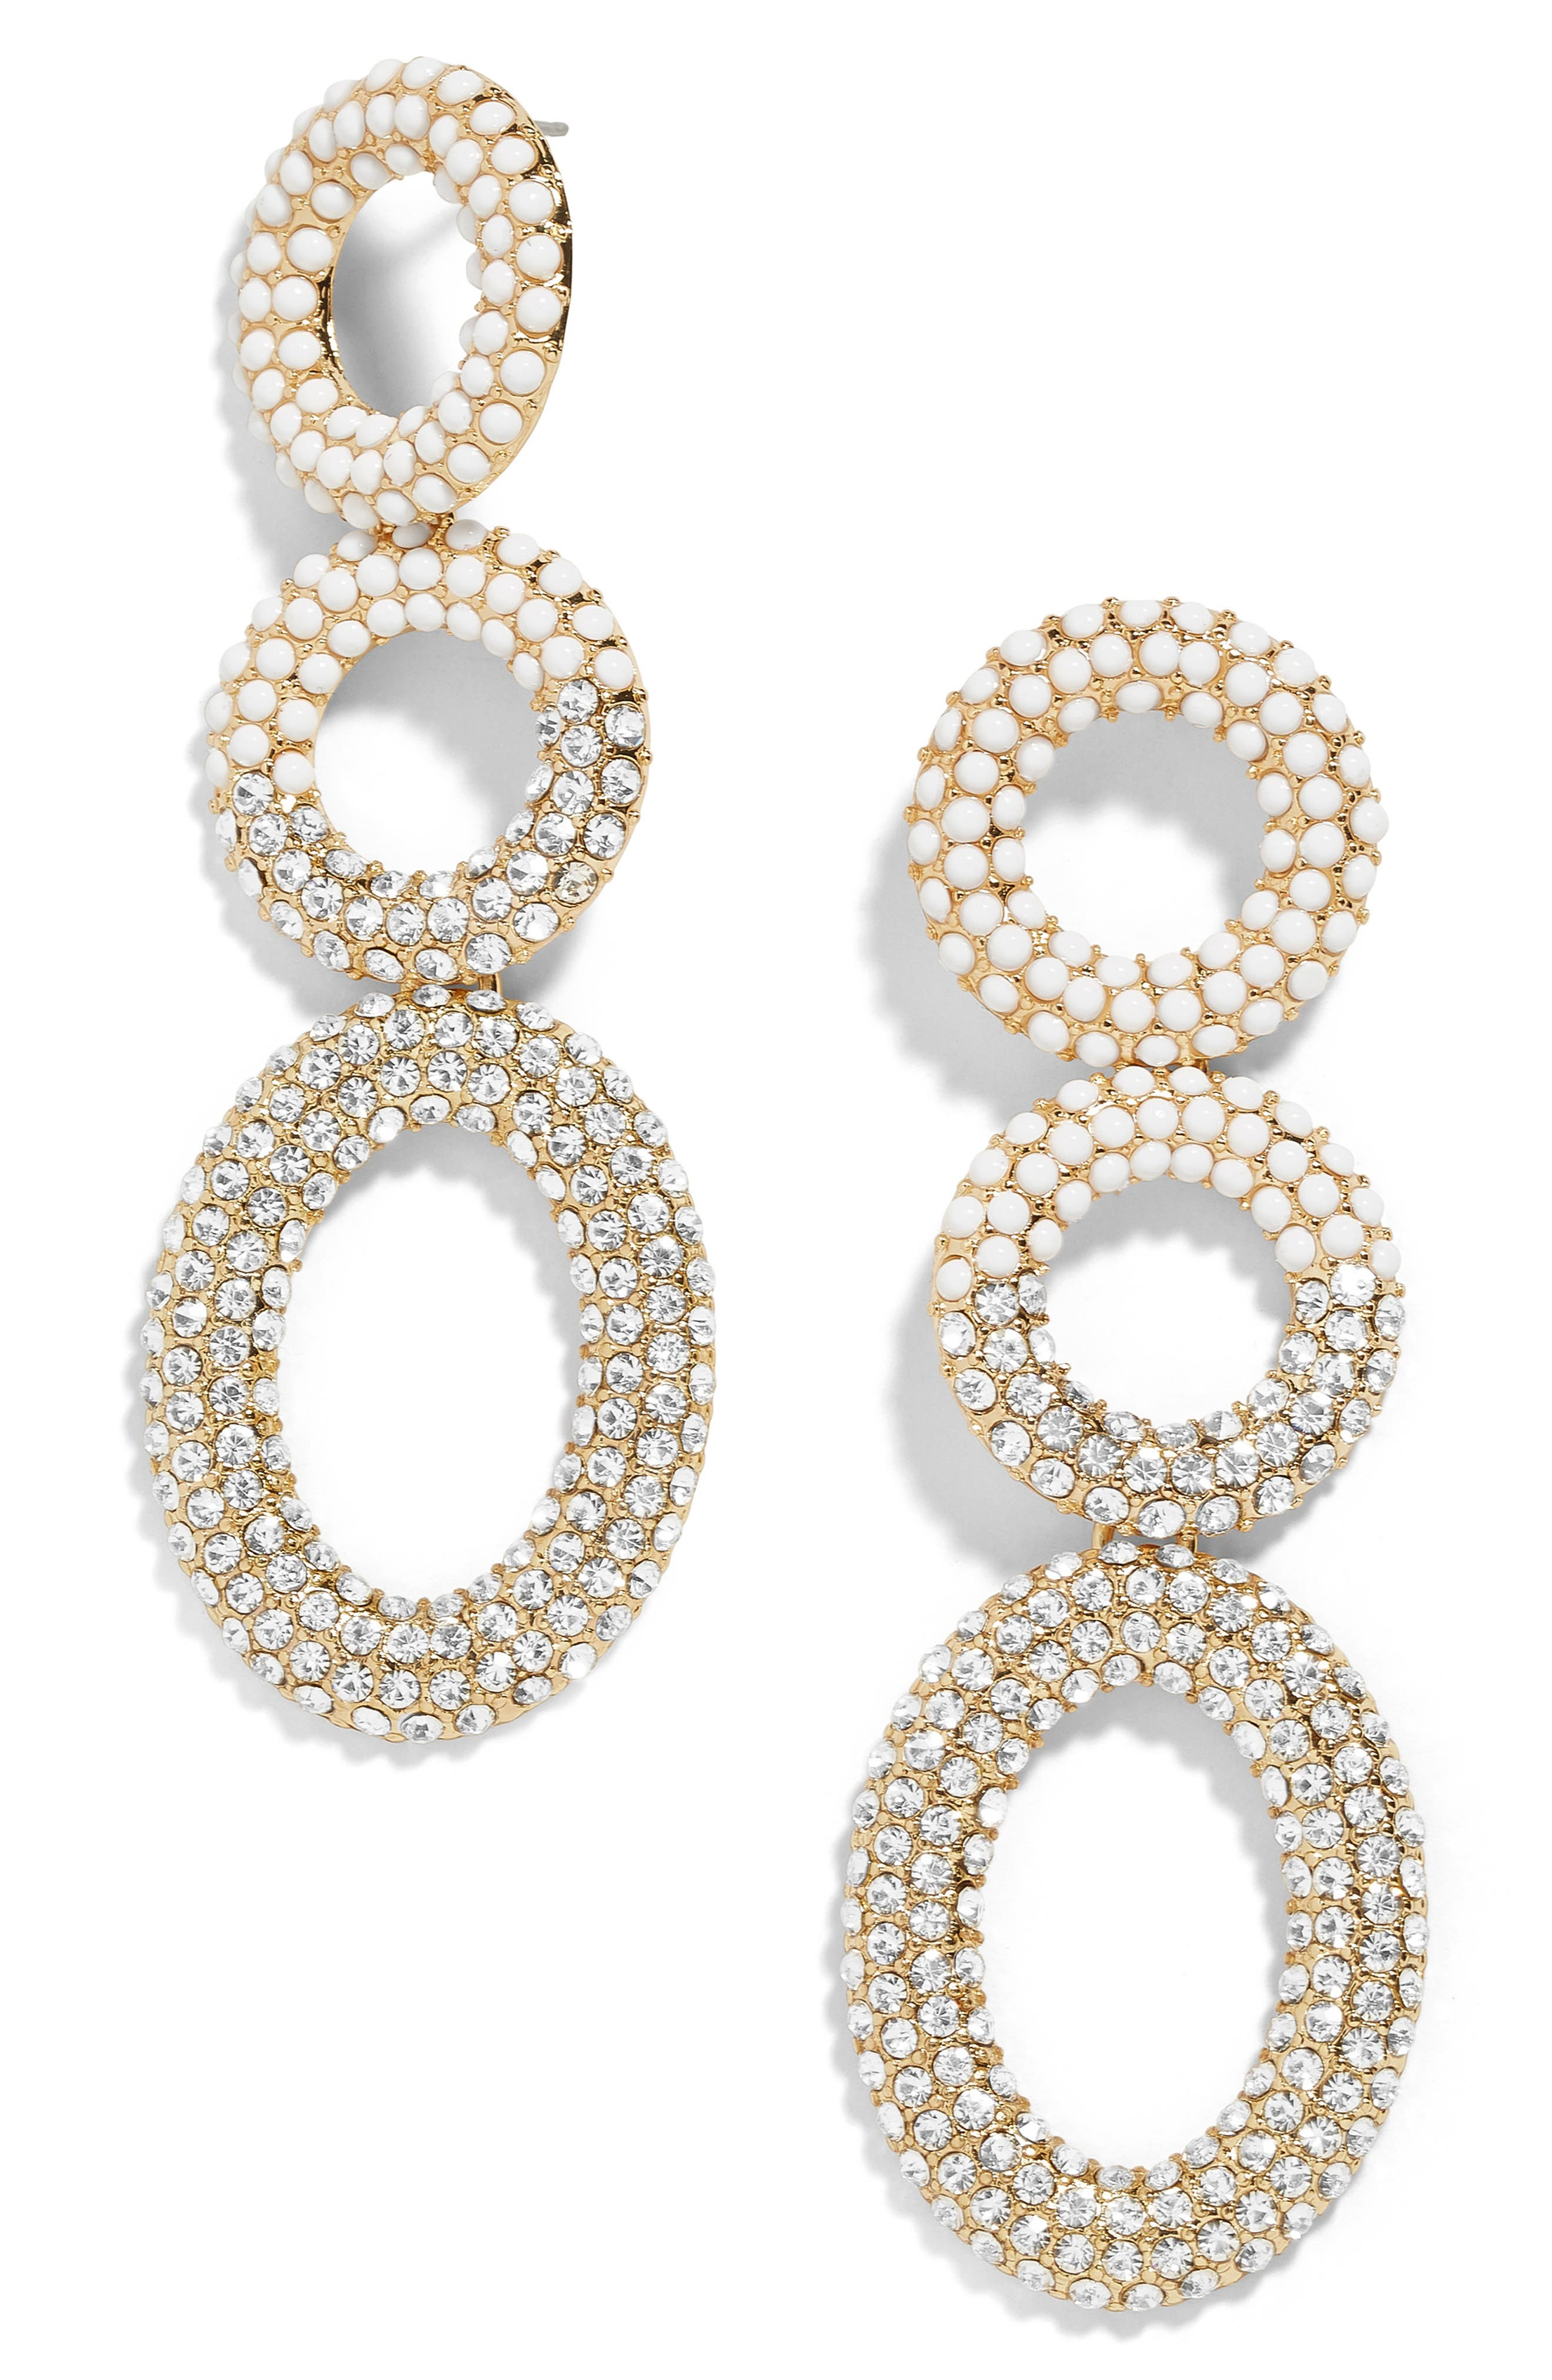 Mimi Tiered Drop Earrings,                         Main,                         color, WHITE